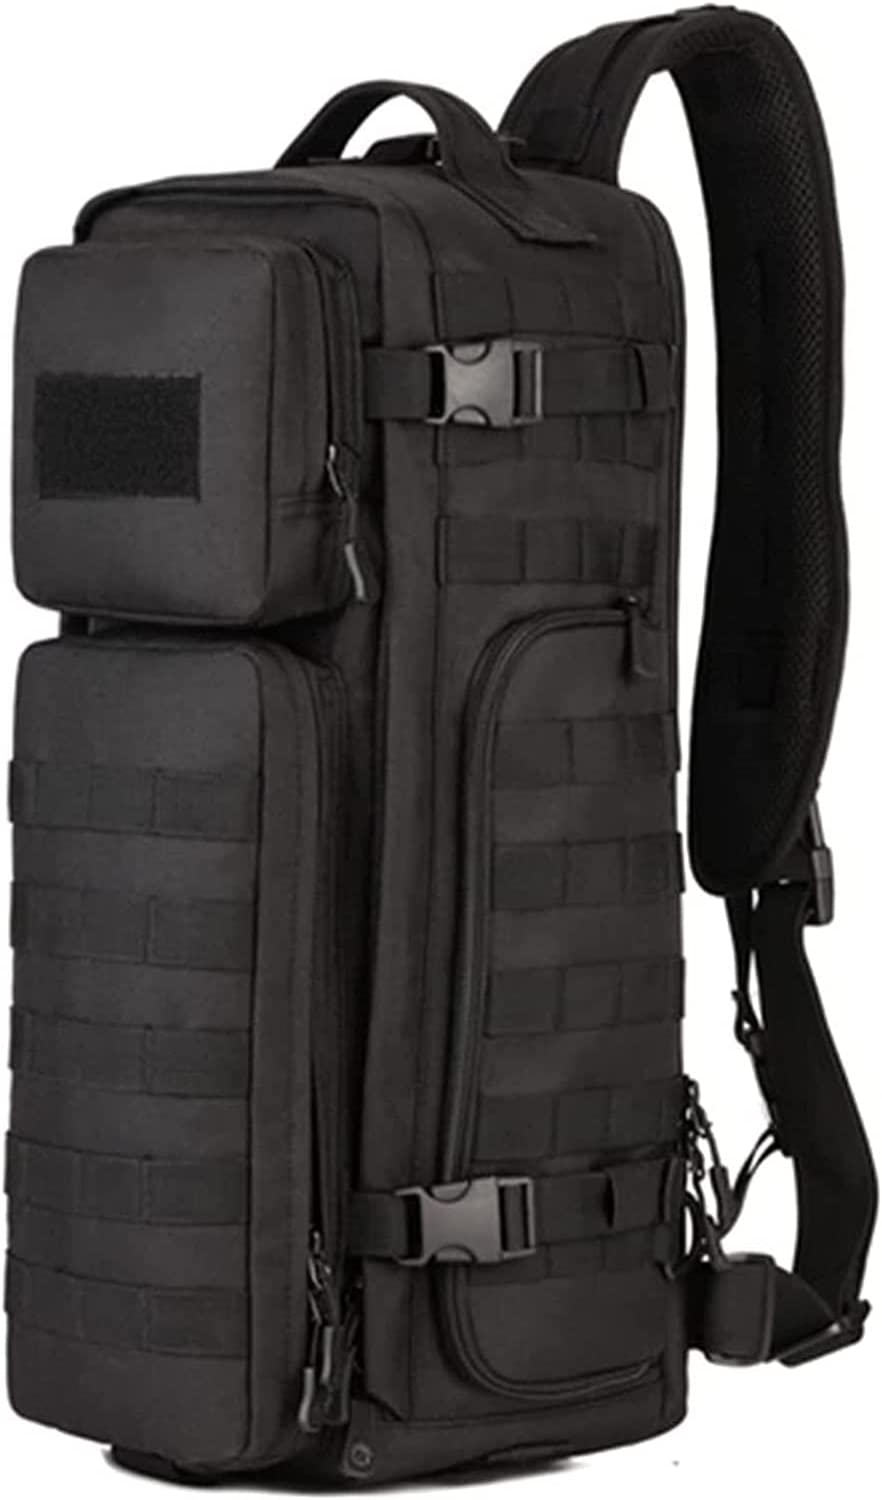 Backpack Cycling Pack Chest Sling Multifunction Ma Free shipping anywhere in the nation Louisville-Jefferson County Mall Rucksack Bag